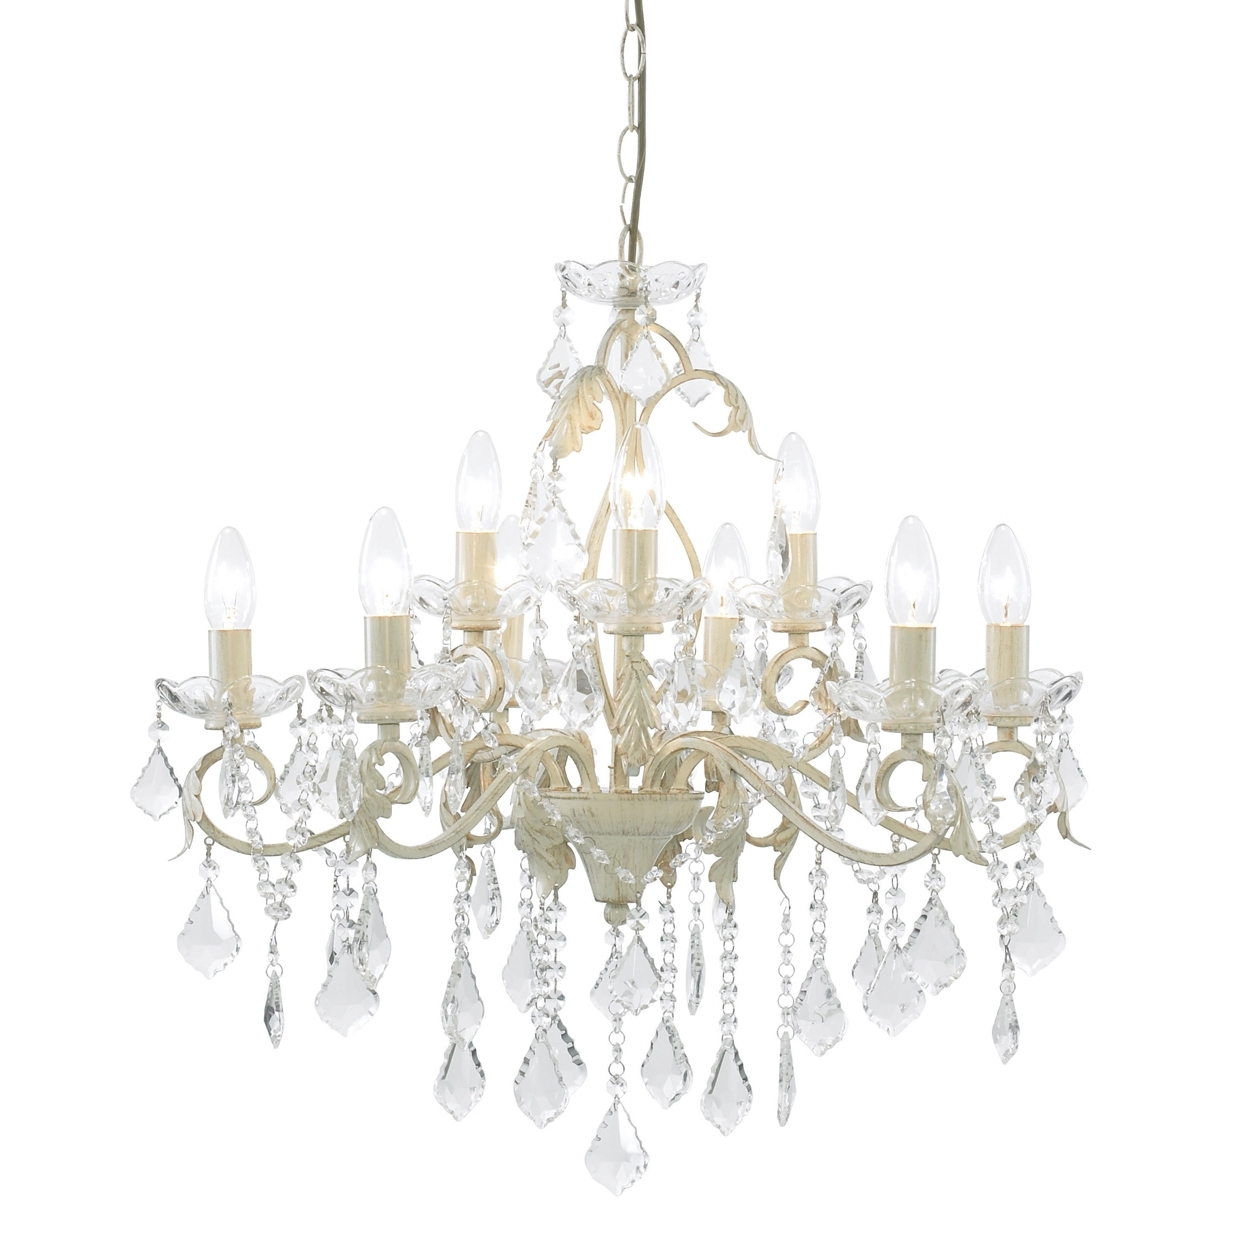 Cream Gold Chandelier Pertaining To Most Recent Cream And Gold Crystal Chandelier Crystal Chandelier Ideas For (View 4 of 20)